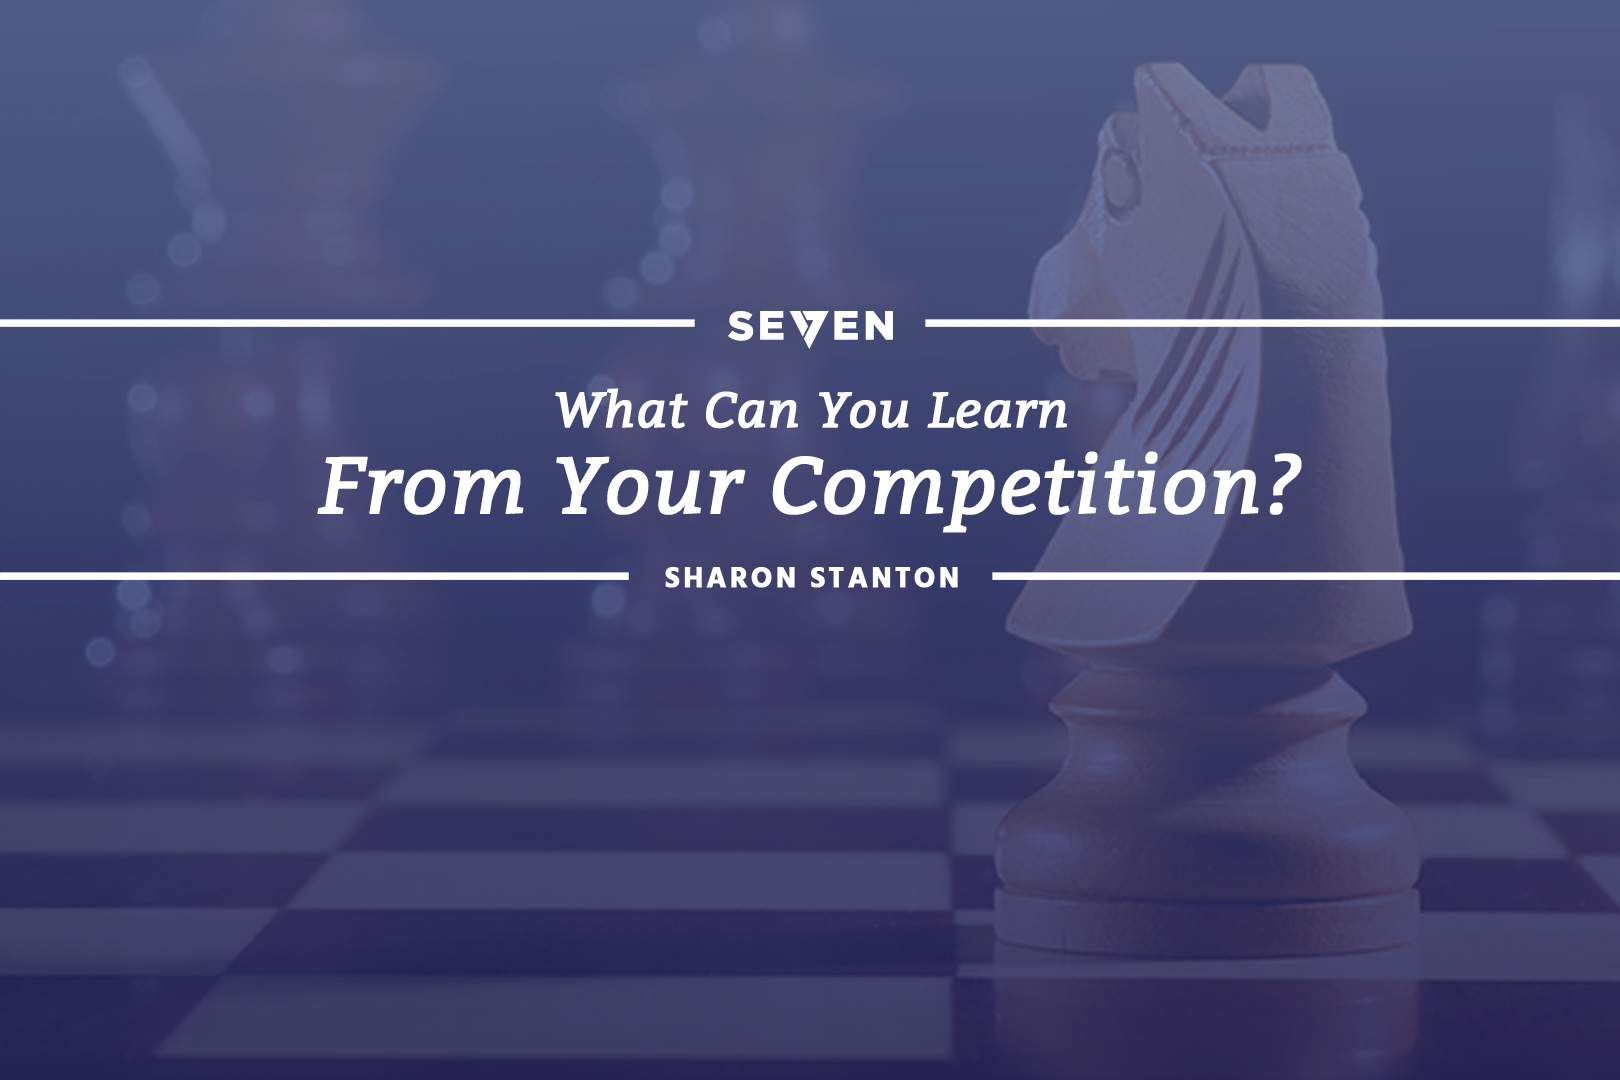 What Can You Learn From Your Competition?